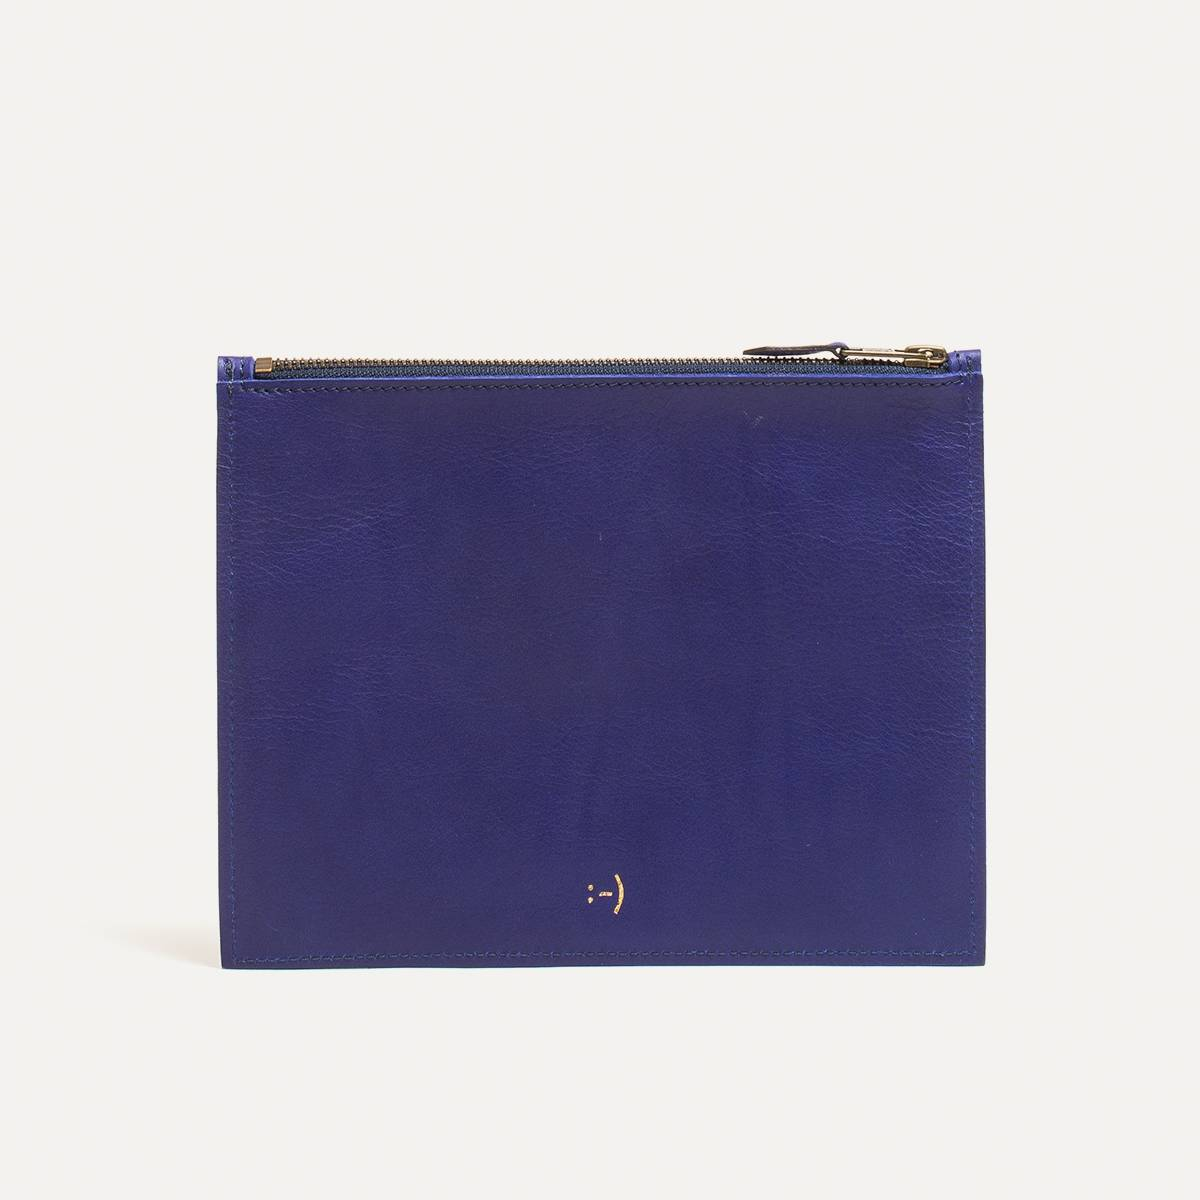 Leather Pouch COSMO M - blue (image n°1)